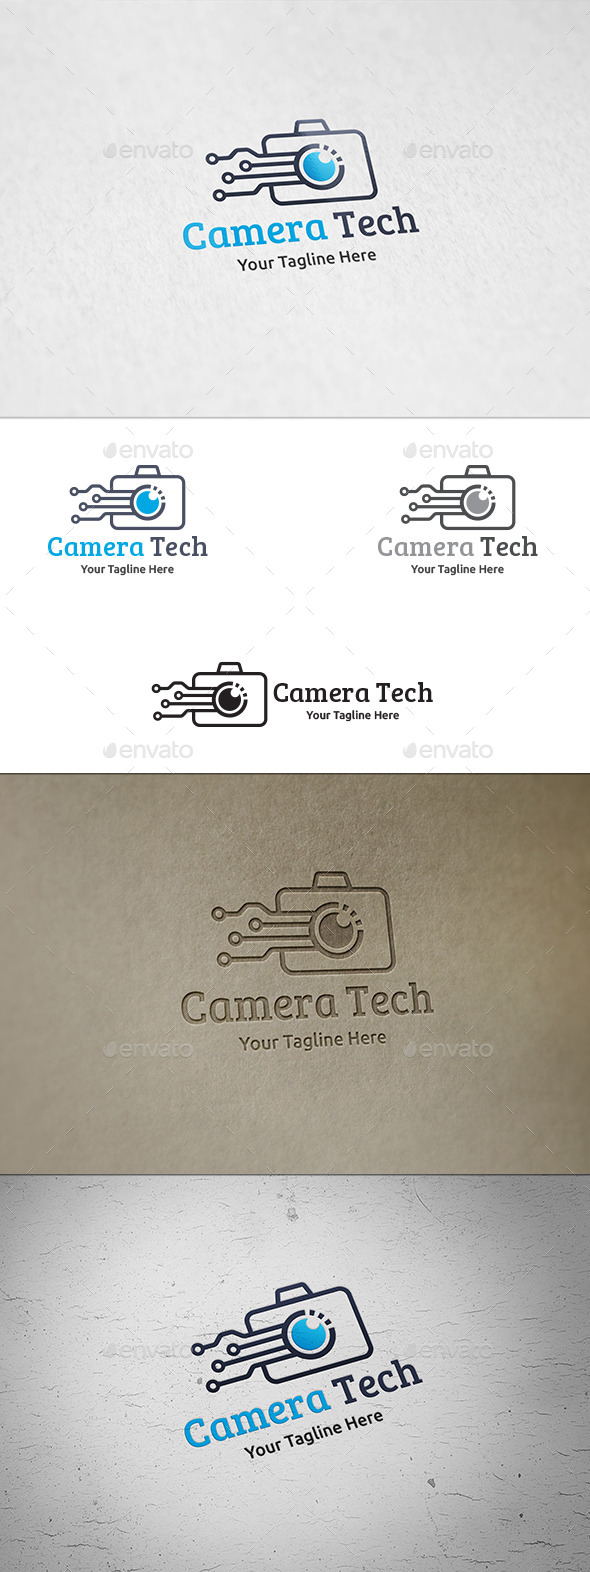 GraphicRiver Camera Tech Logo Template 8961068